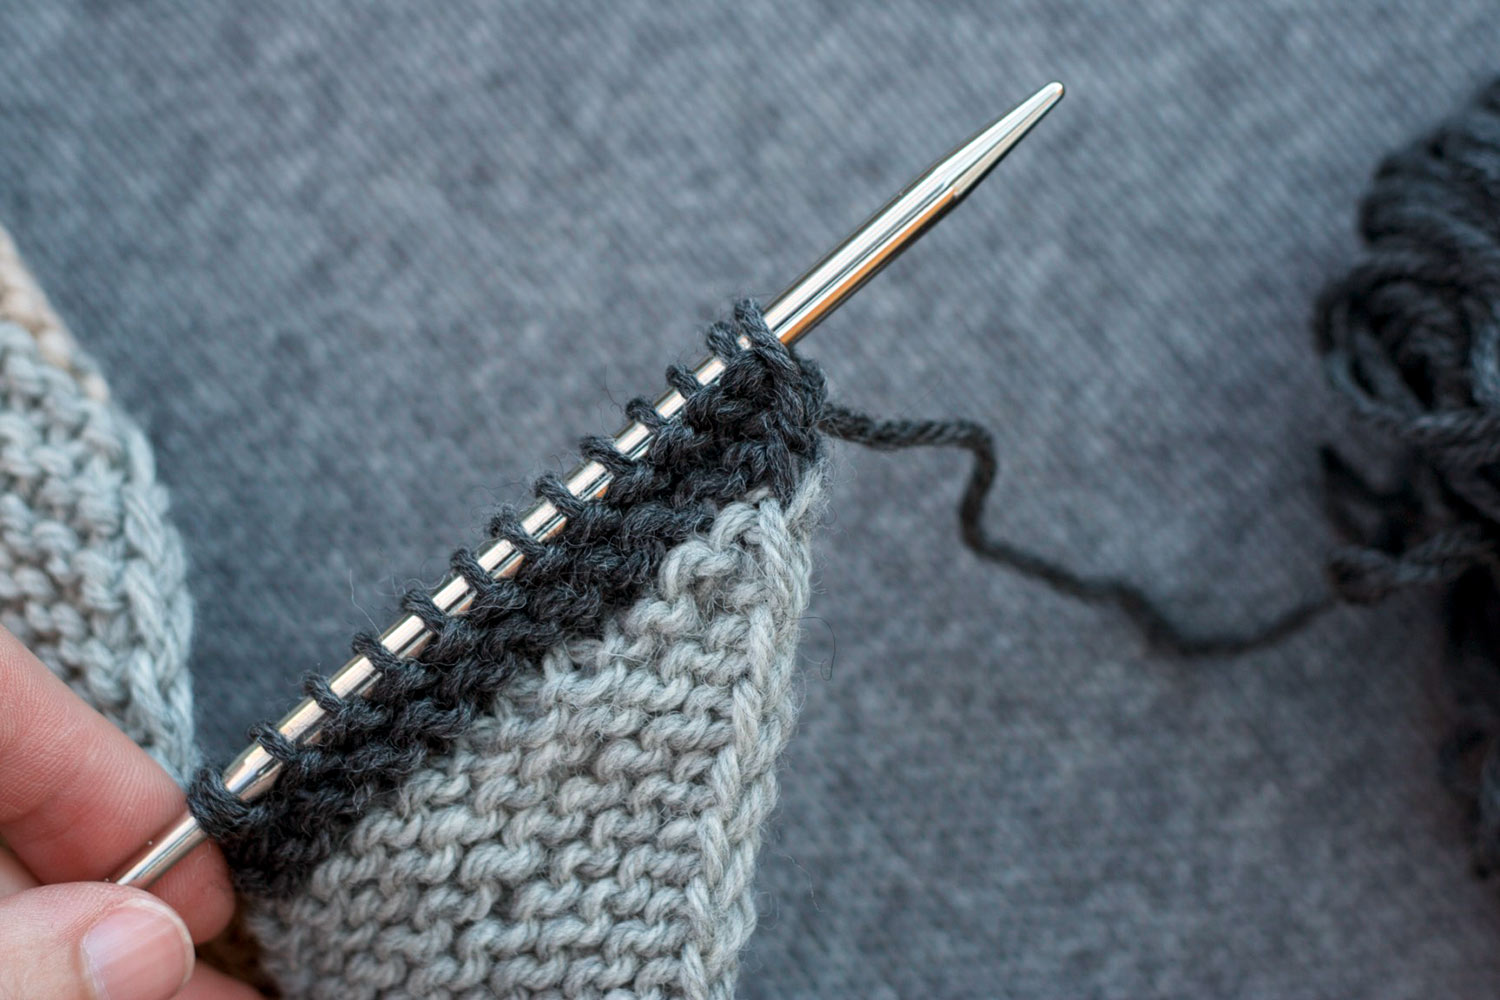 Several rows of light grey garter stitch with two charcoal grey ridges above, on the needles, showing that the two-colour join occurred perfectly at the end of a row.